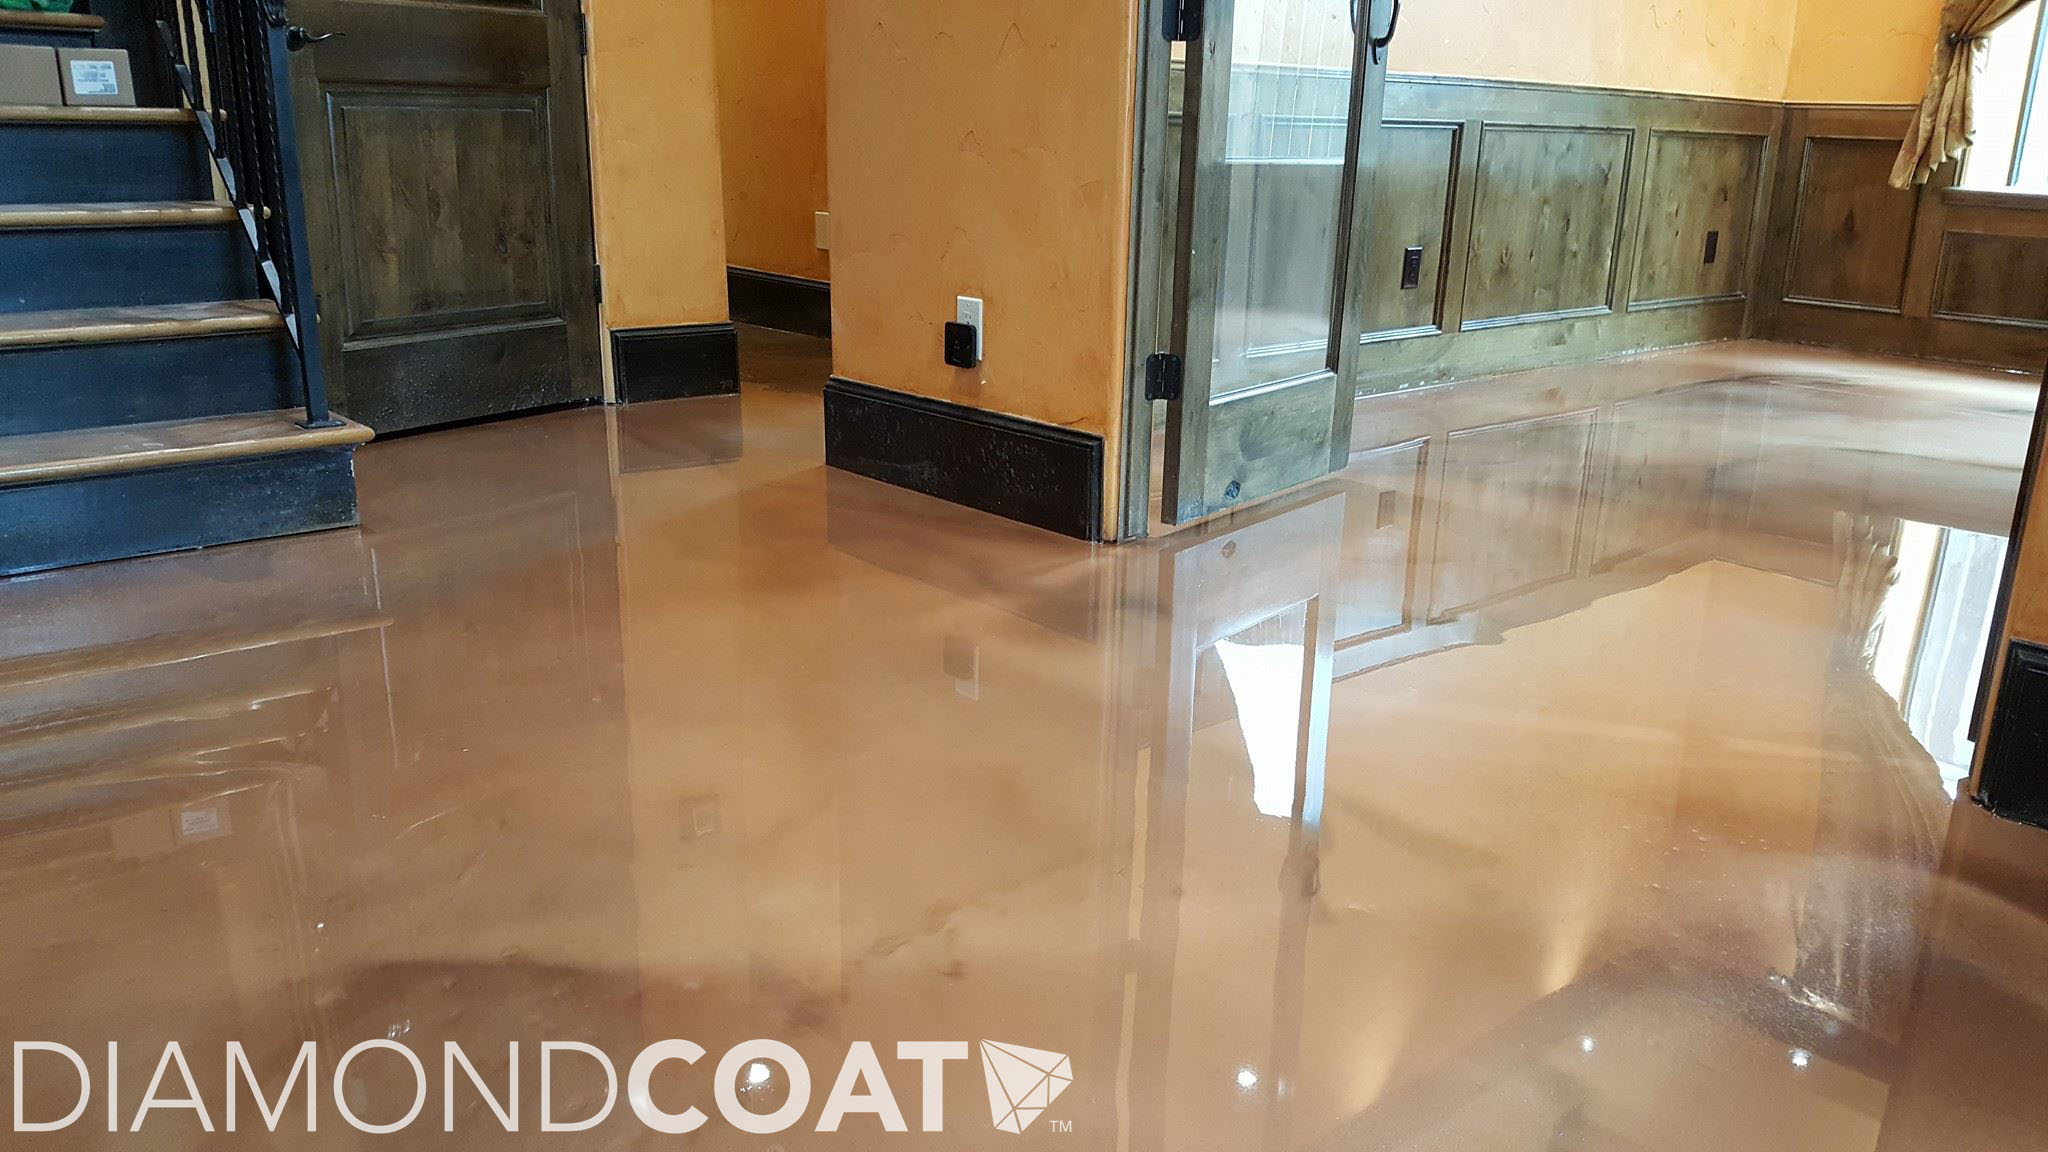 epoxy flooring house. Epoxy Is An Extremely Durable Flooring Material. Traditionally Has Been Used In The Garage And Only Recently Introduced Into Home. House